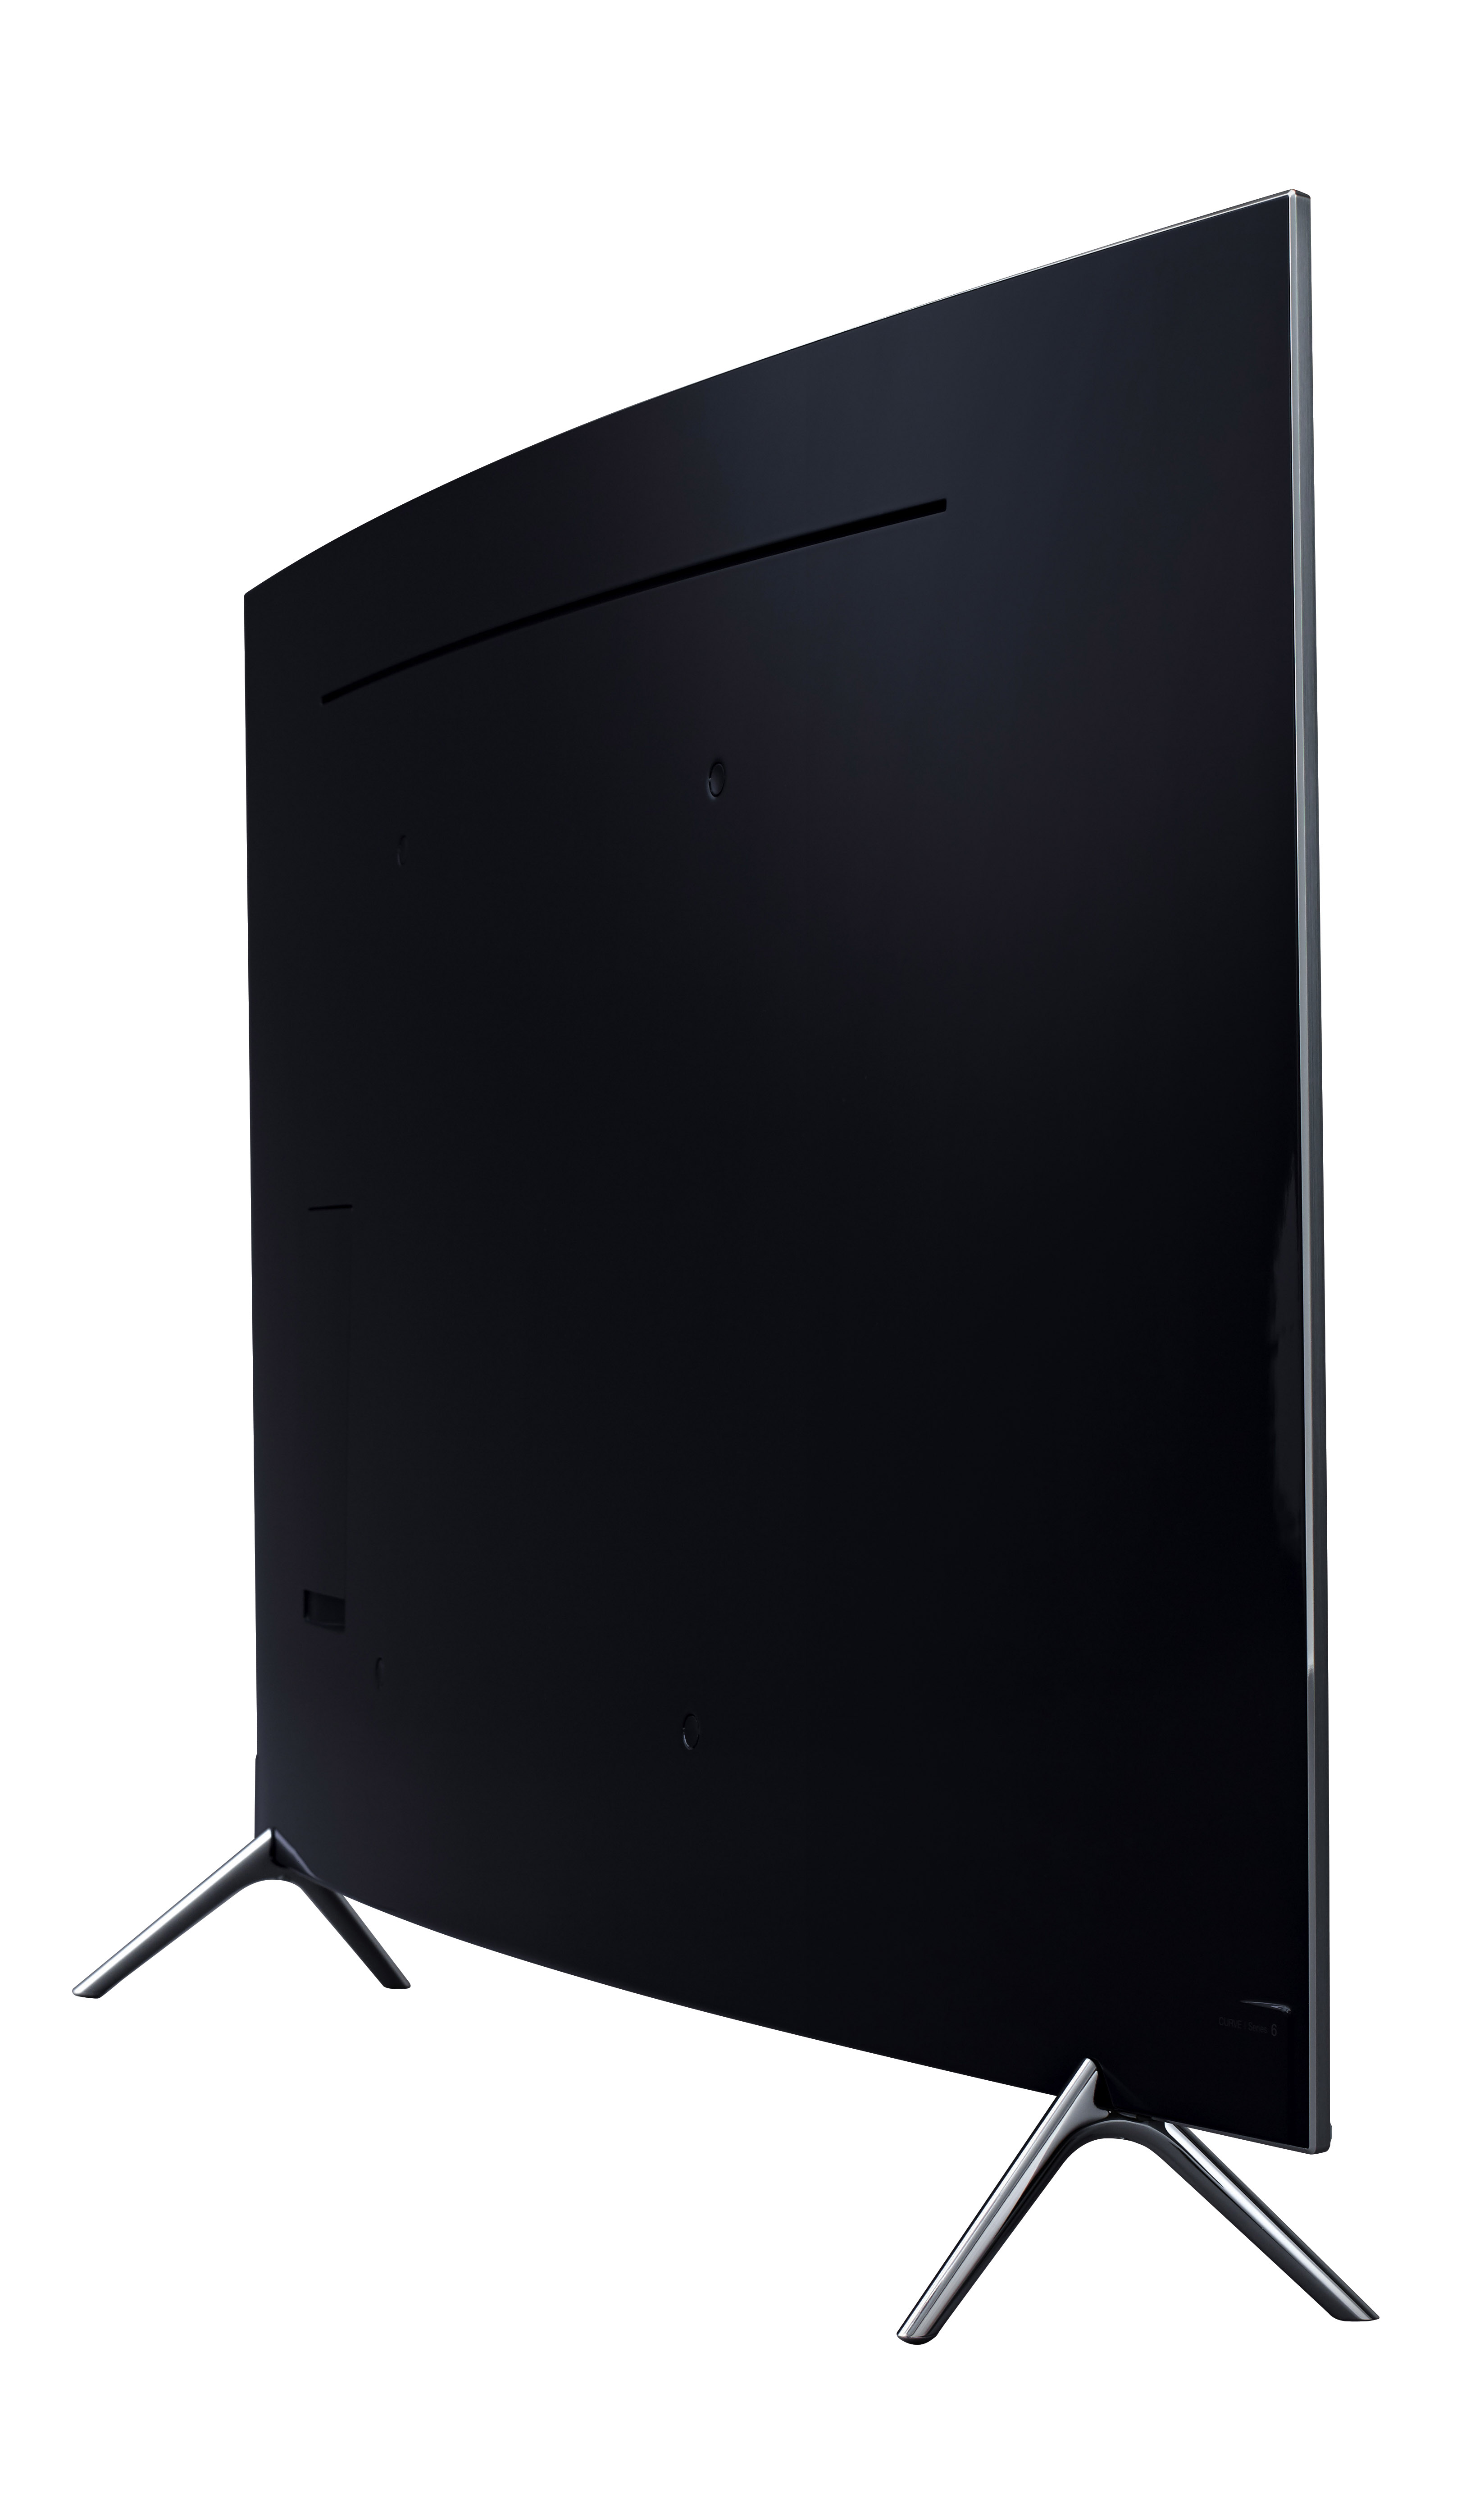 samsung ue55ks7500 review 4k hdr and curves this tv. Black Bedroom Furniture Sets. Home Design Ideas